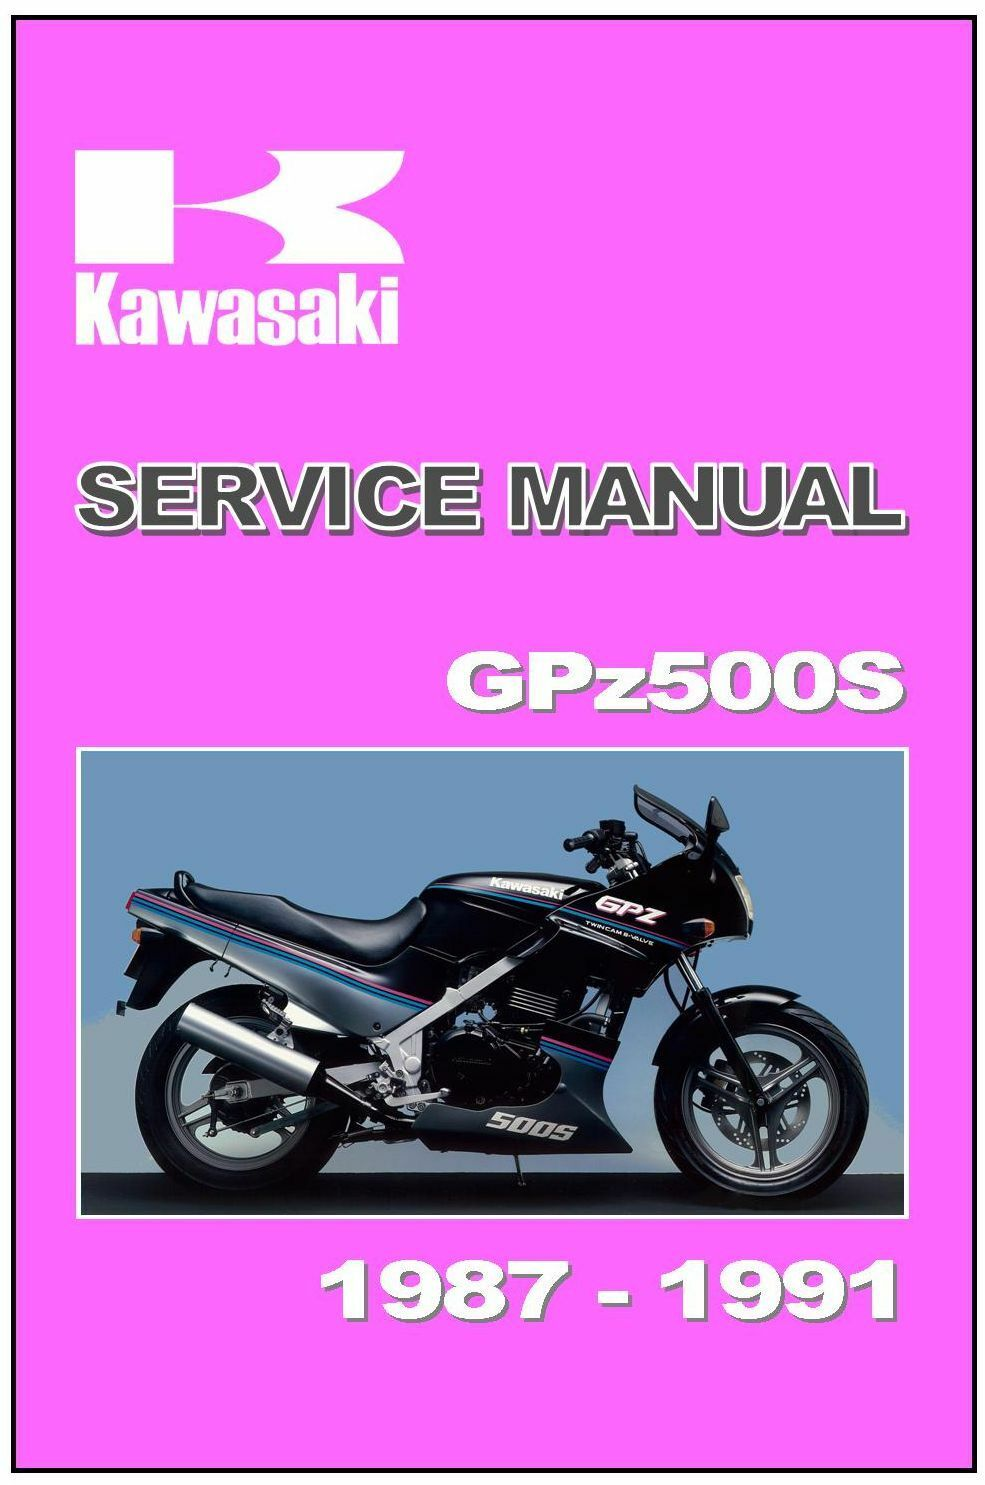 KAWASAKI Workshop Manual GPz500 GPz500S EX500 1987 1988 1989 1990 & 1991  Service 1 of 7Only 1 available ...